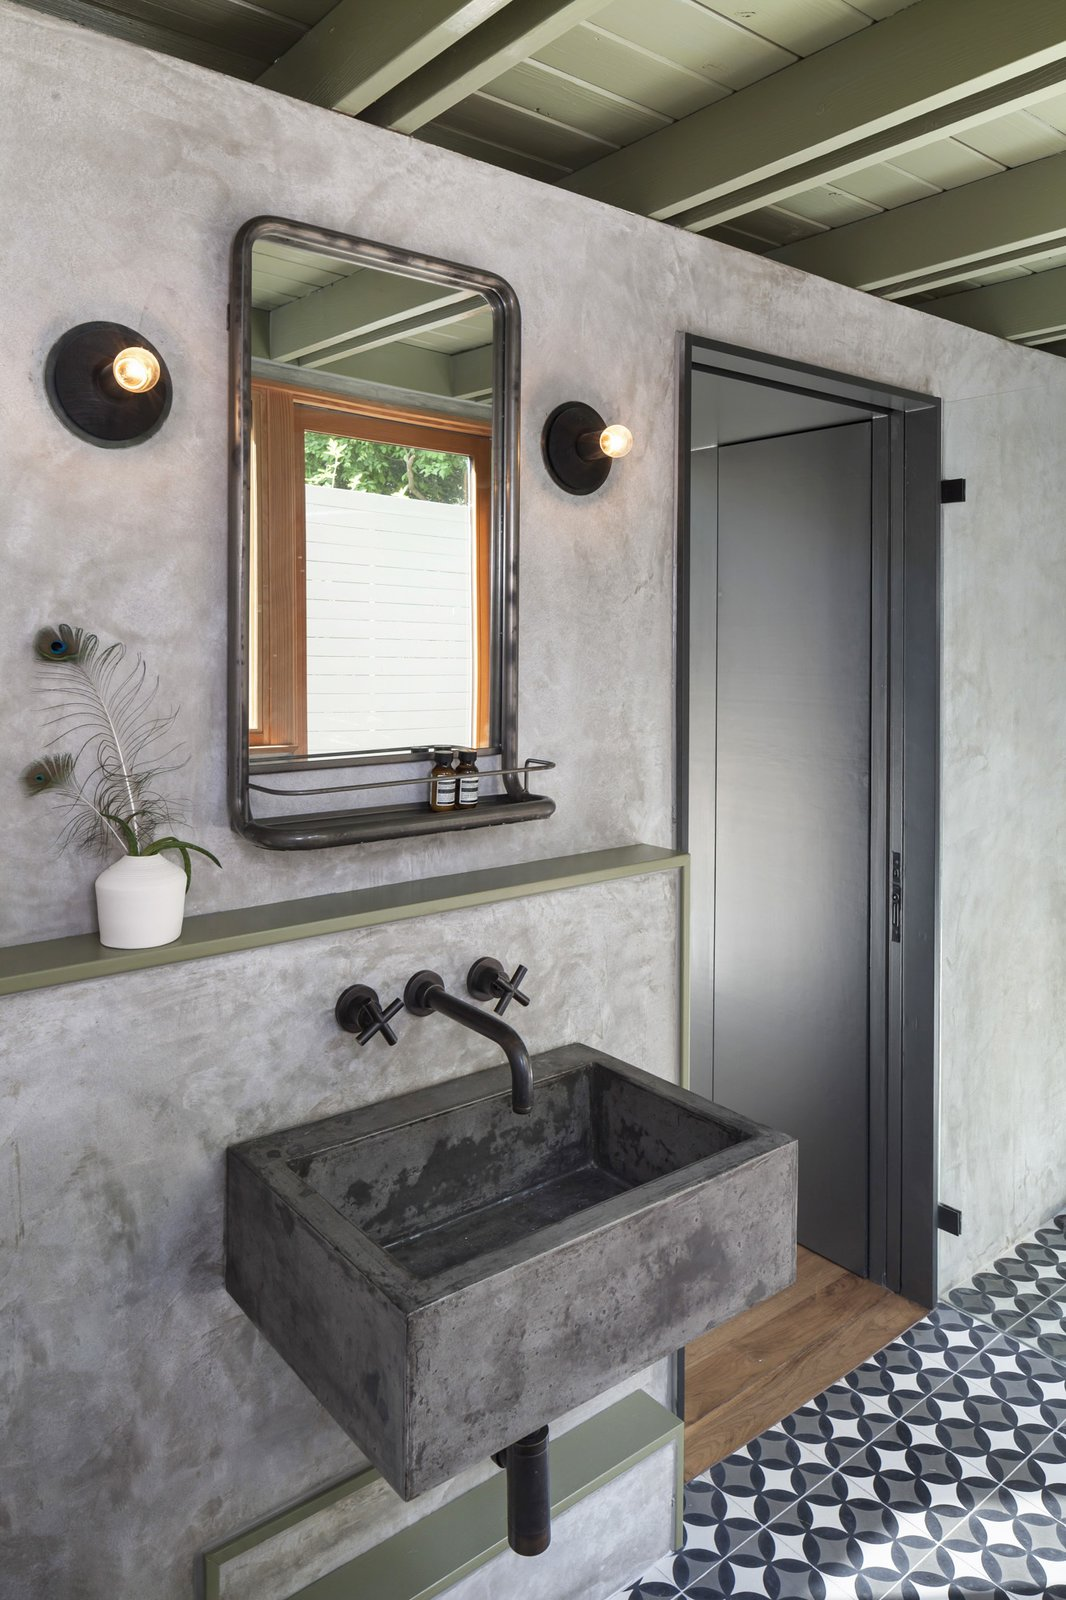 Bath Room, Wall Mount Sink, Wall Lighting, and Cement Tile Floor The new casita bathroom features a custom concrete sink, plaster walls, and custom concrete tile.  Garner Pool & Casita